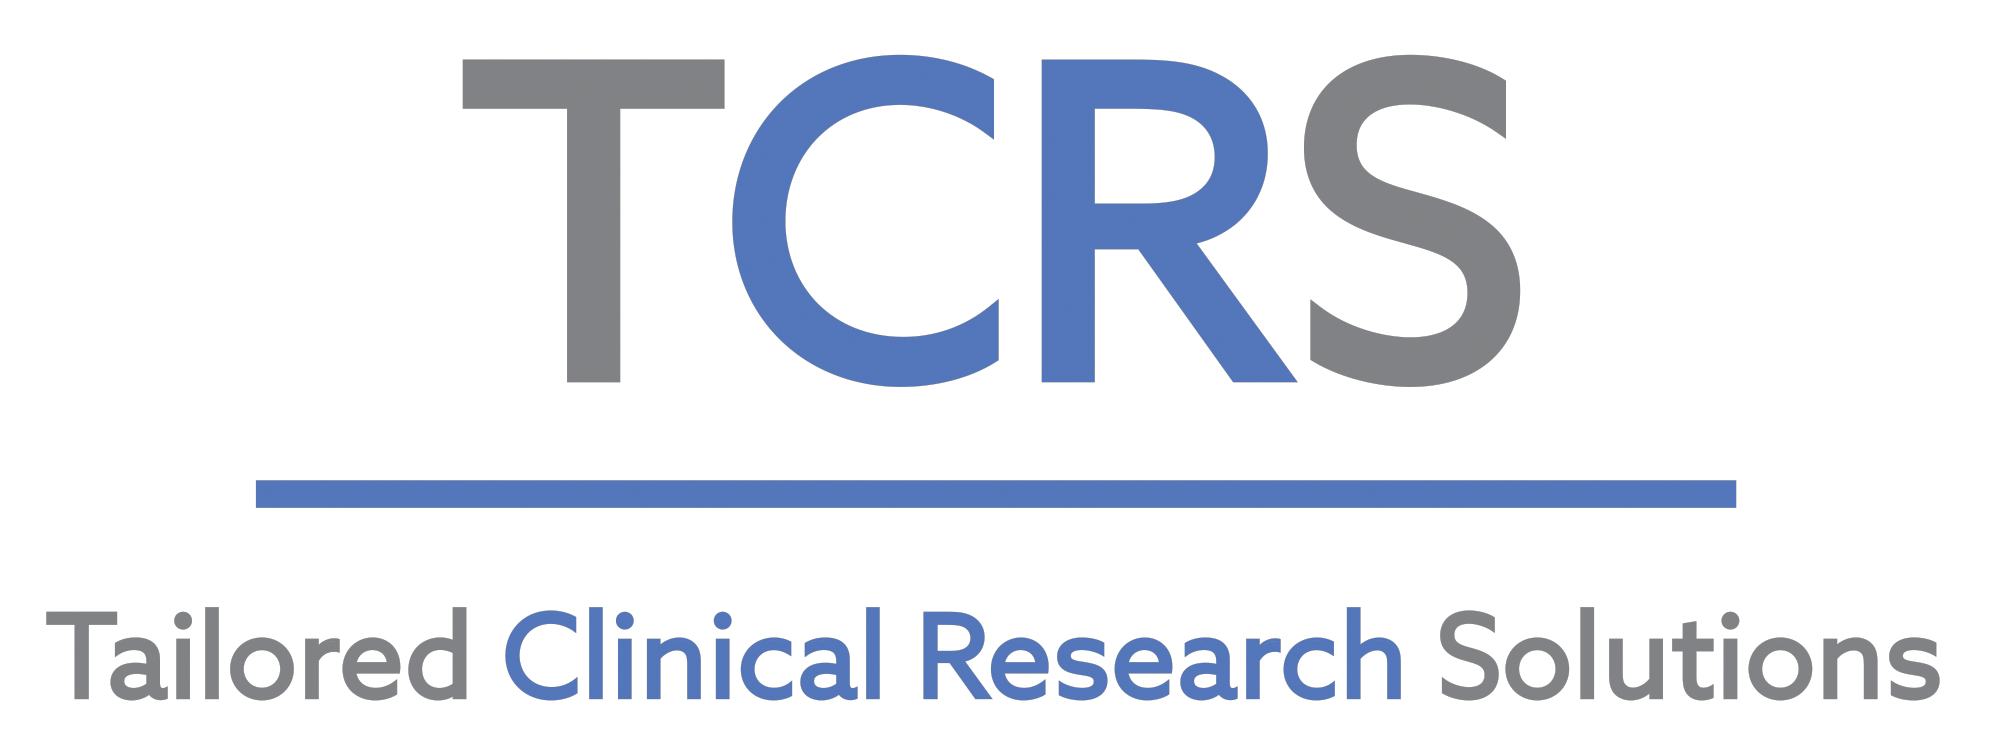 Tailored Clinical Research Solutions